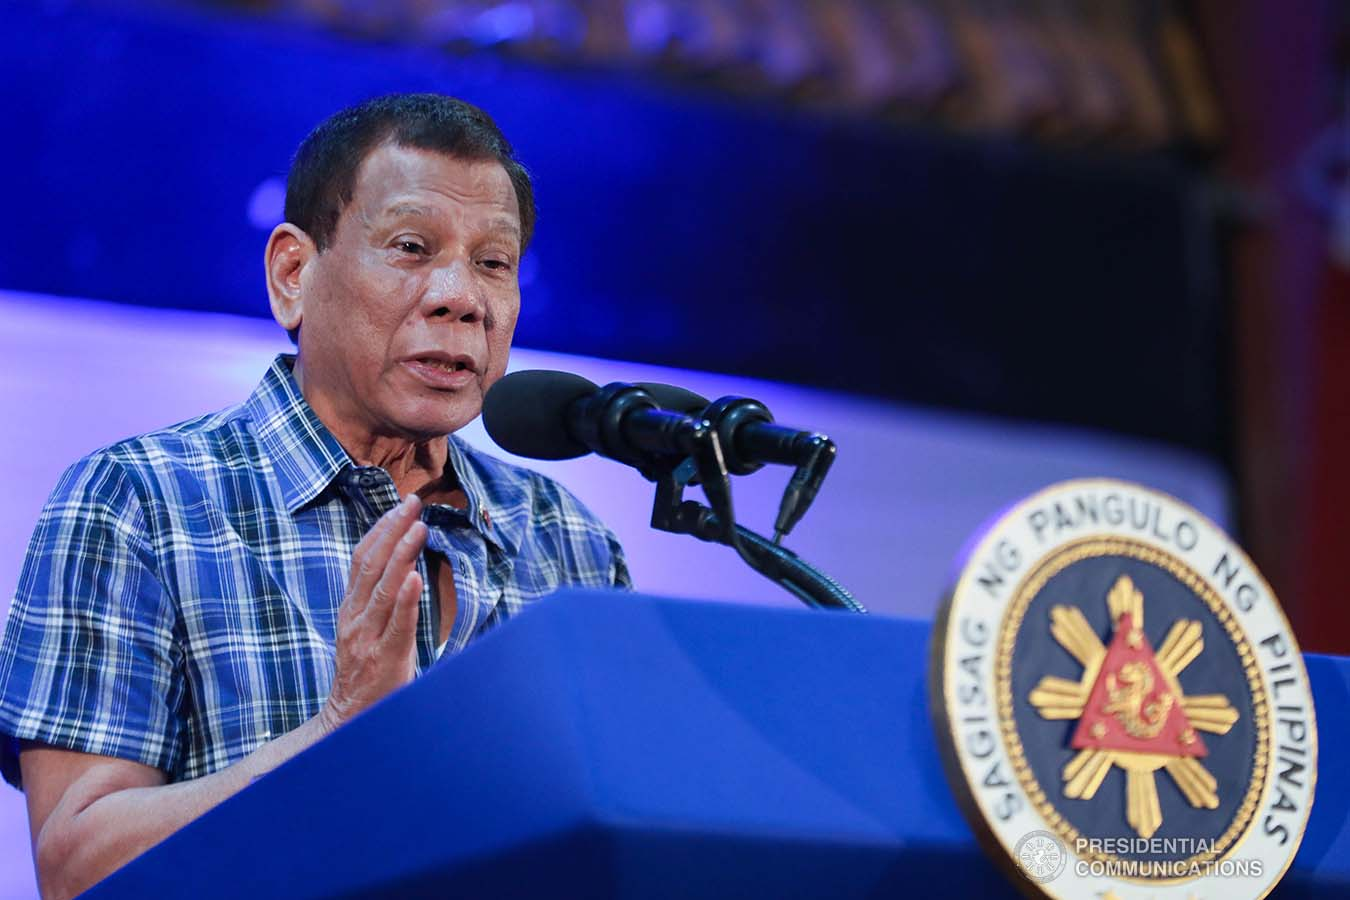 President Rodrigo Roa Duterte delivers a speech after leading the ceremonial distribution of assistance to the families affected by the Taal Volcano eruption at the Polytechnic University of the Philippines-Sto. Tomas Campus in Sto. Tomas City, Batangas on January 20, 2020. VALERIE ESCALERA/PRESIDENTIAL PHOTO